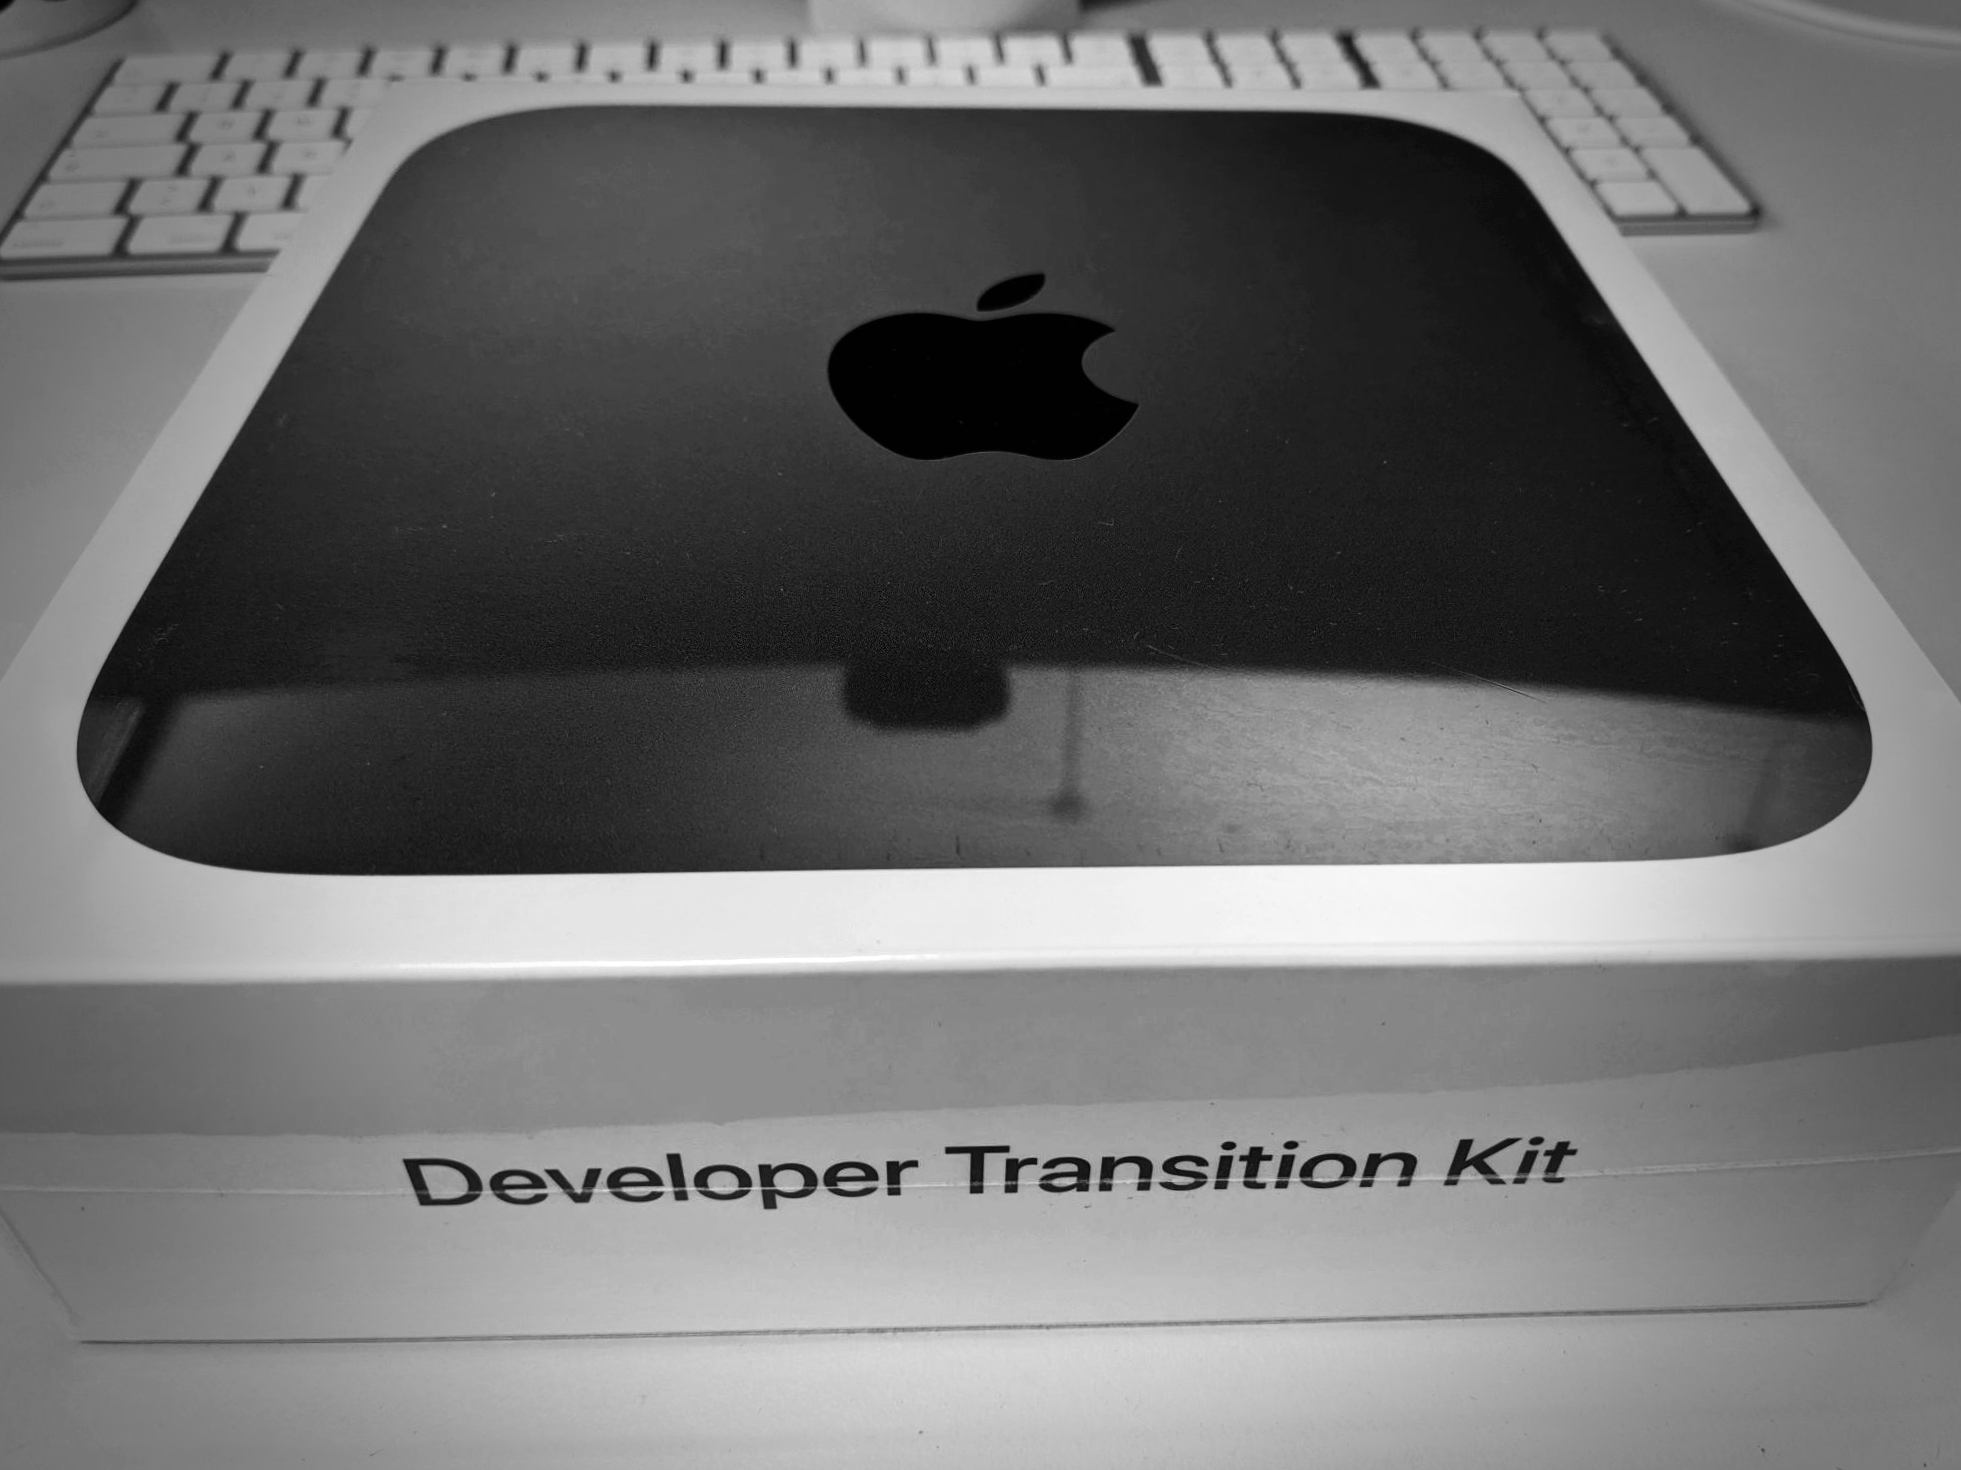 Apple Developer Transition Kit with Apple Silicon M1